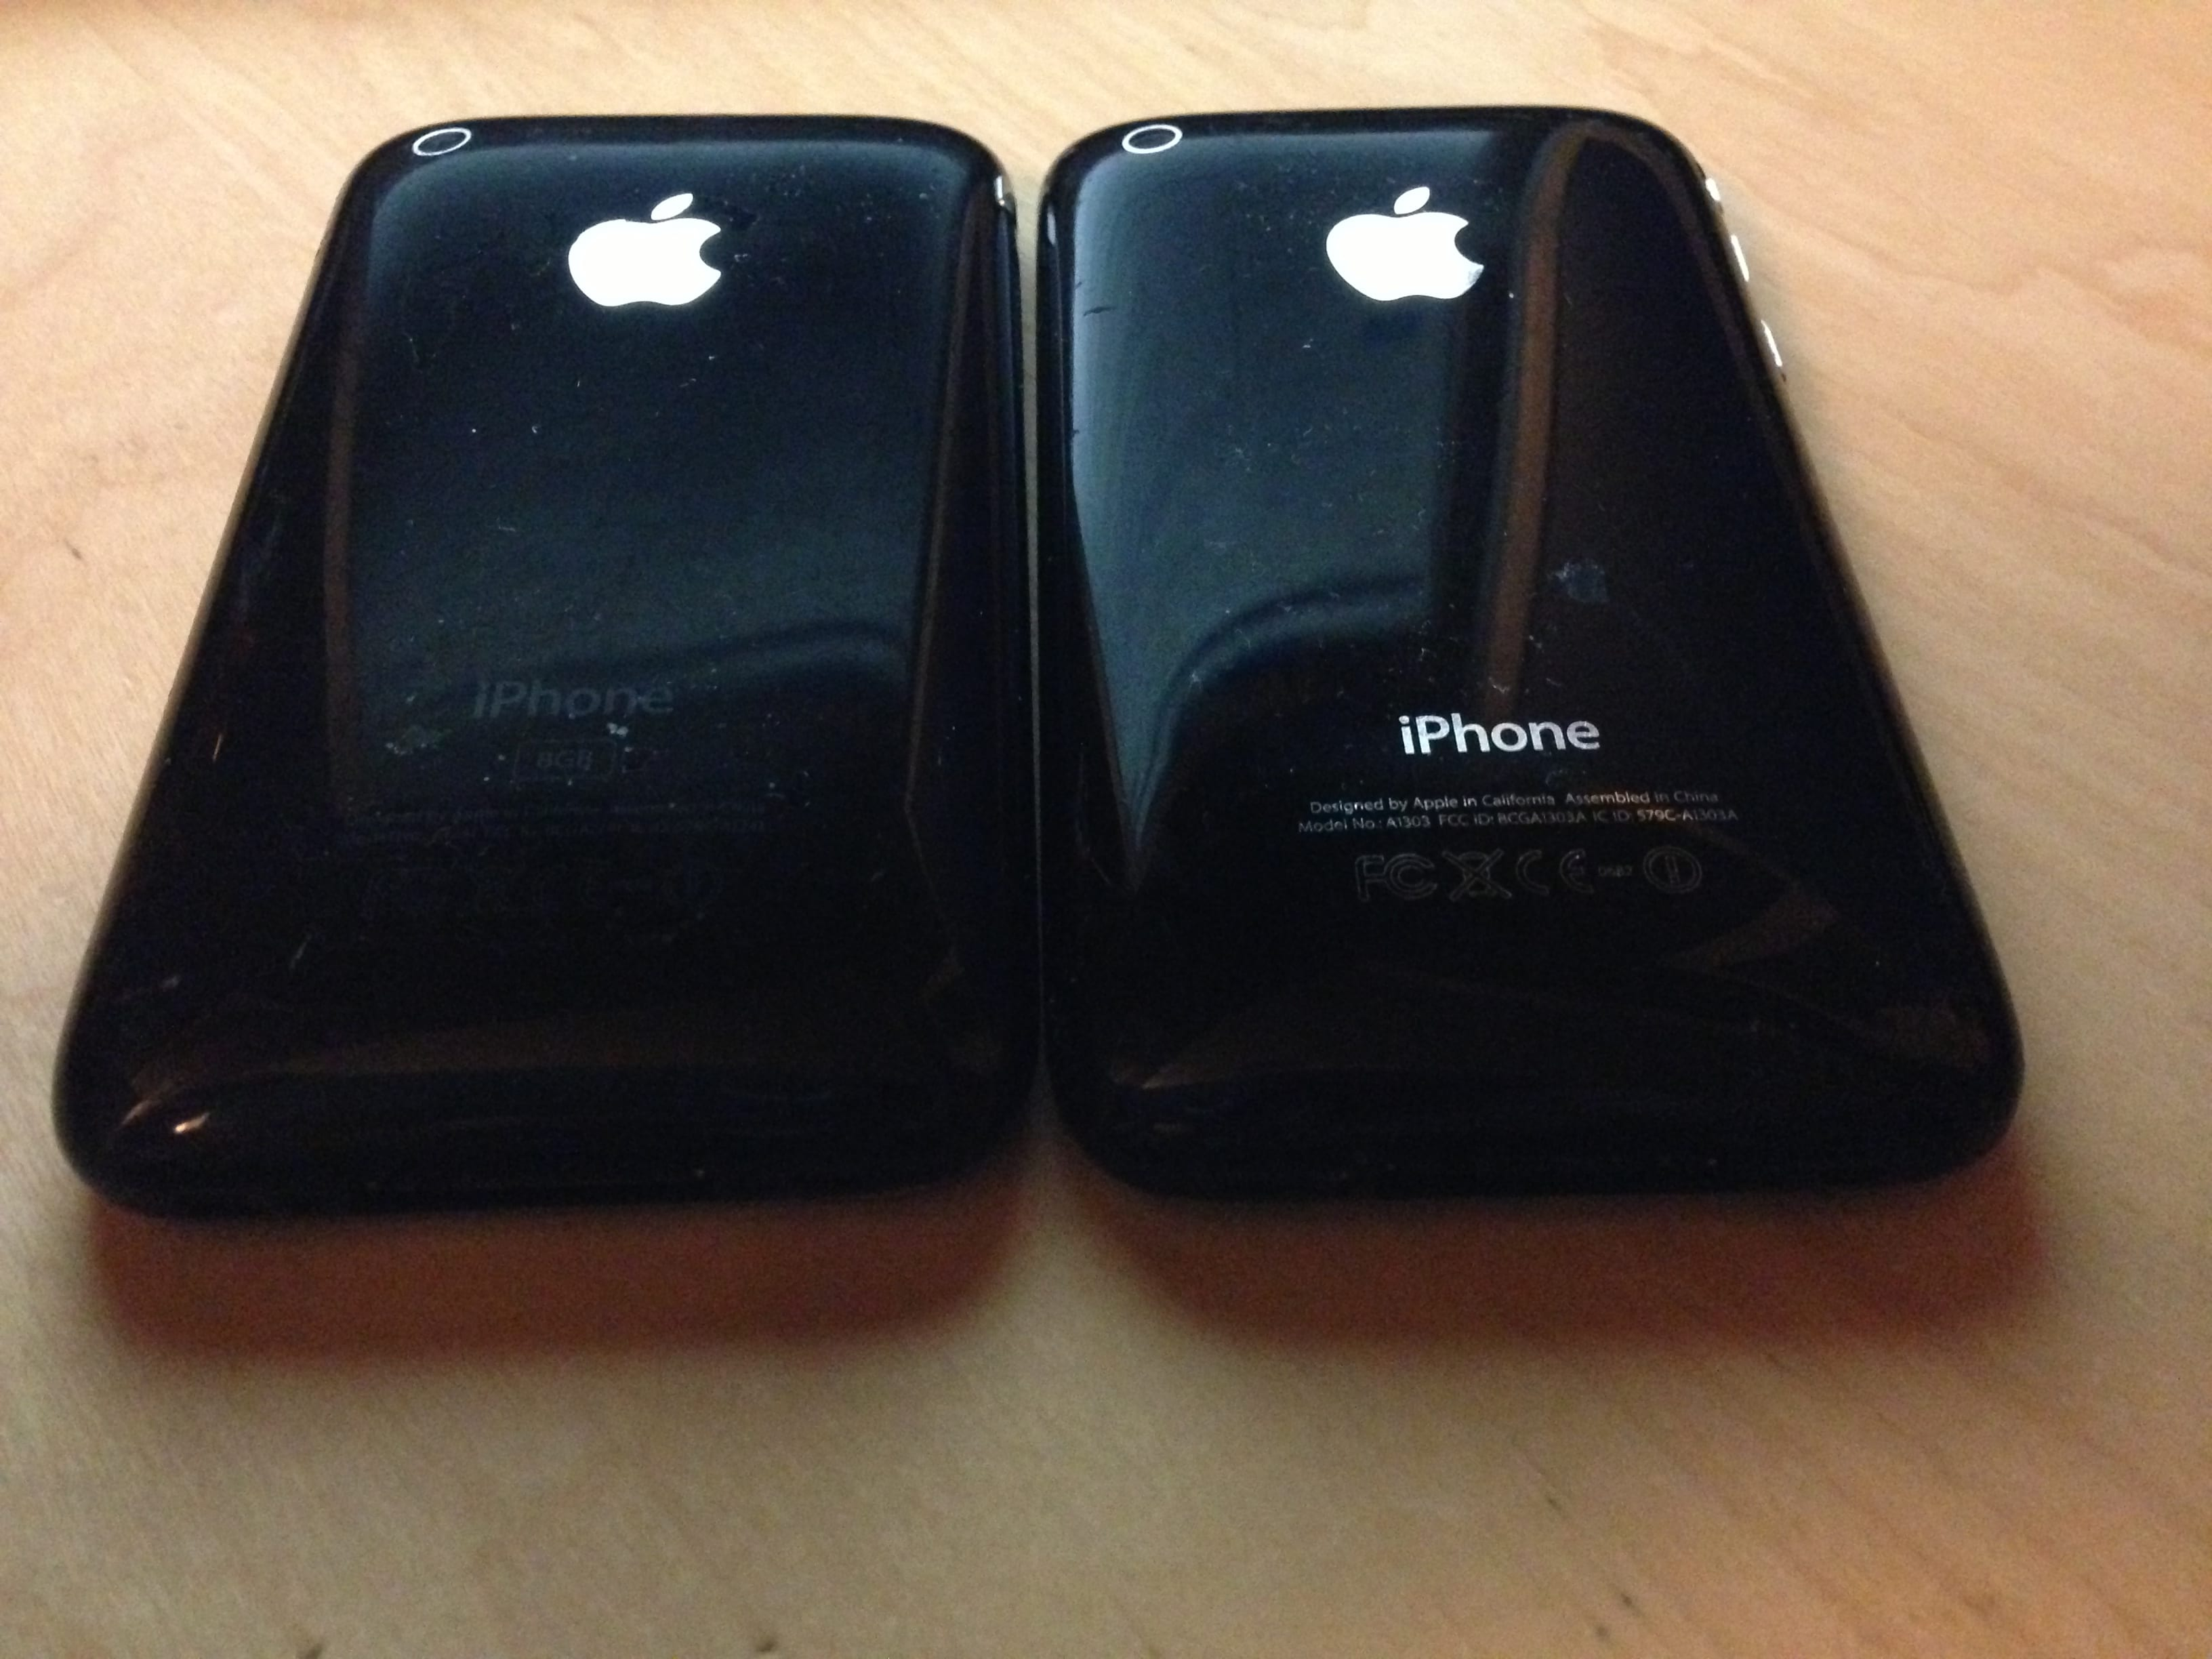 How To Visually Tell The Difference Between Apple IPhone 3G And 3GS